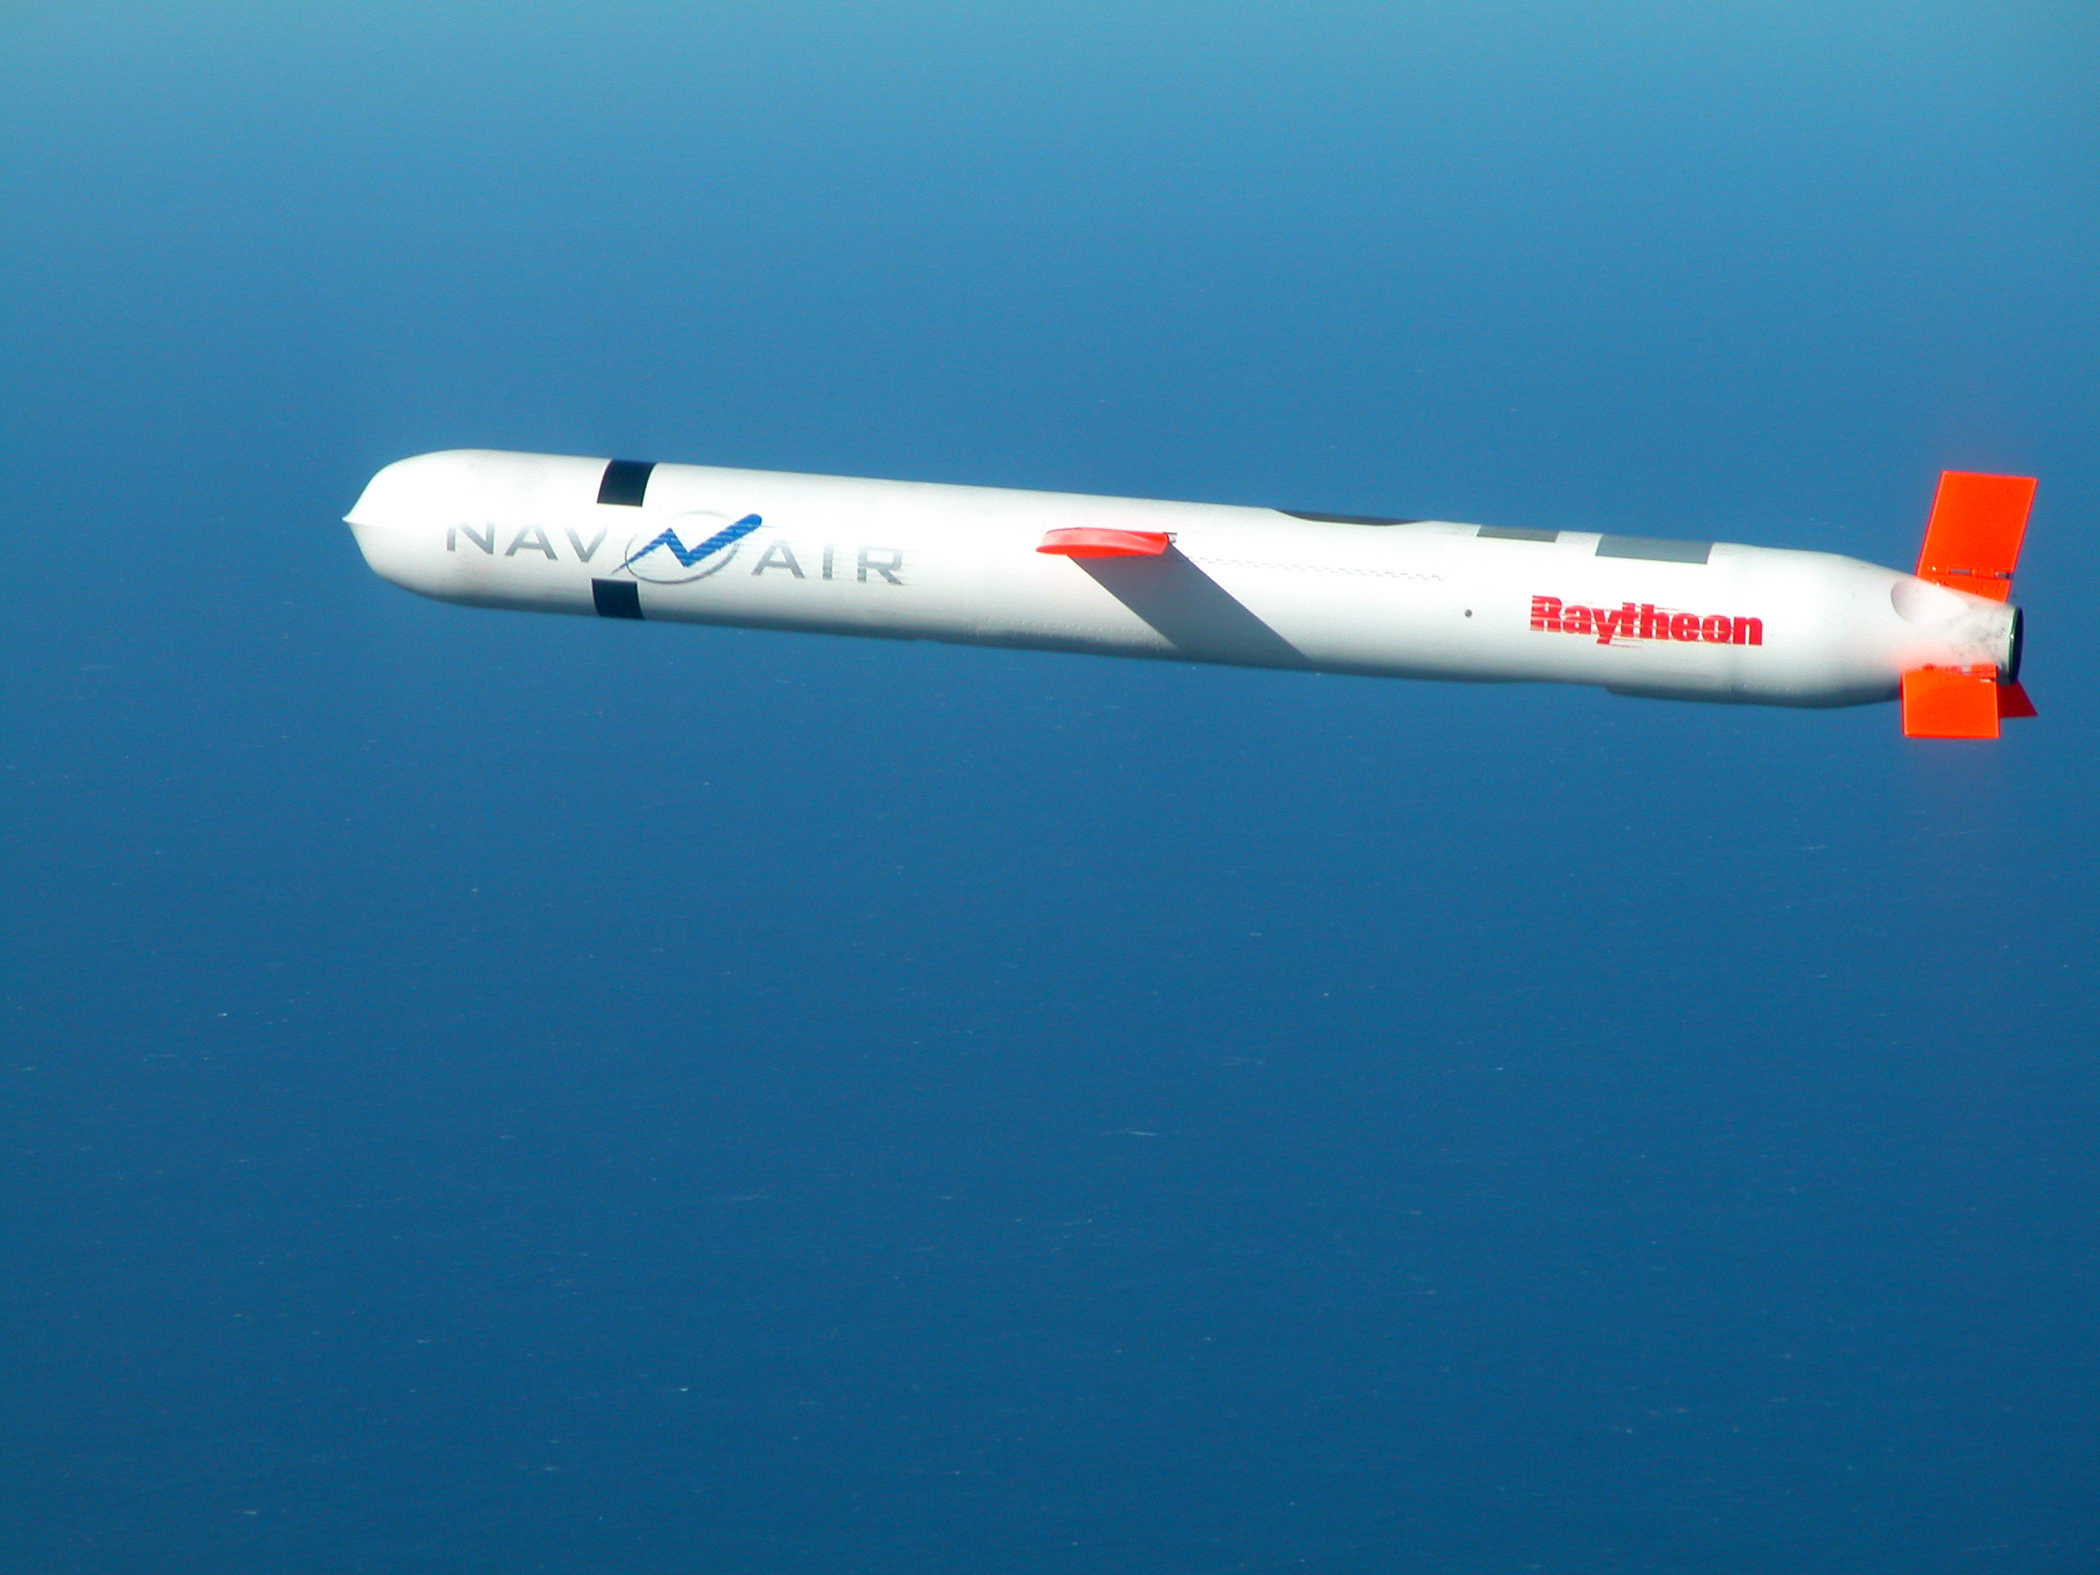 Tactical Tomahawk Block IV Cruise Missile Test